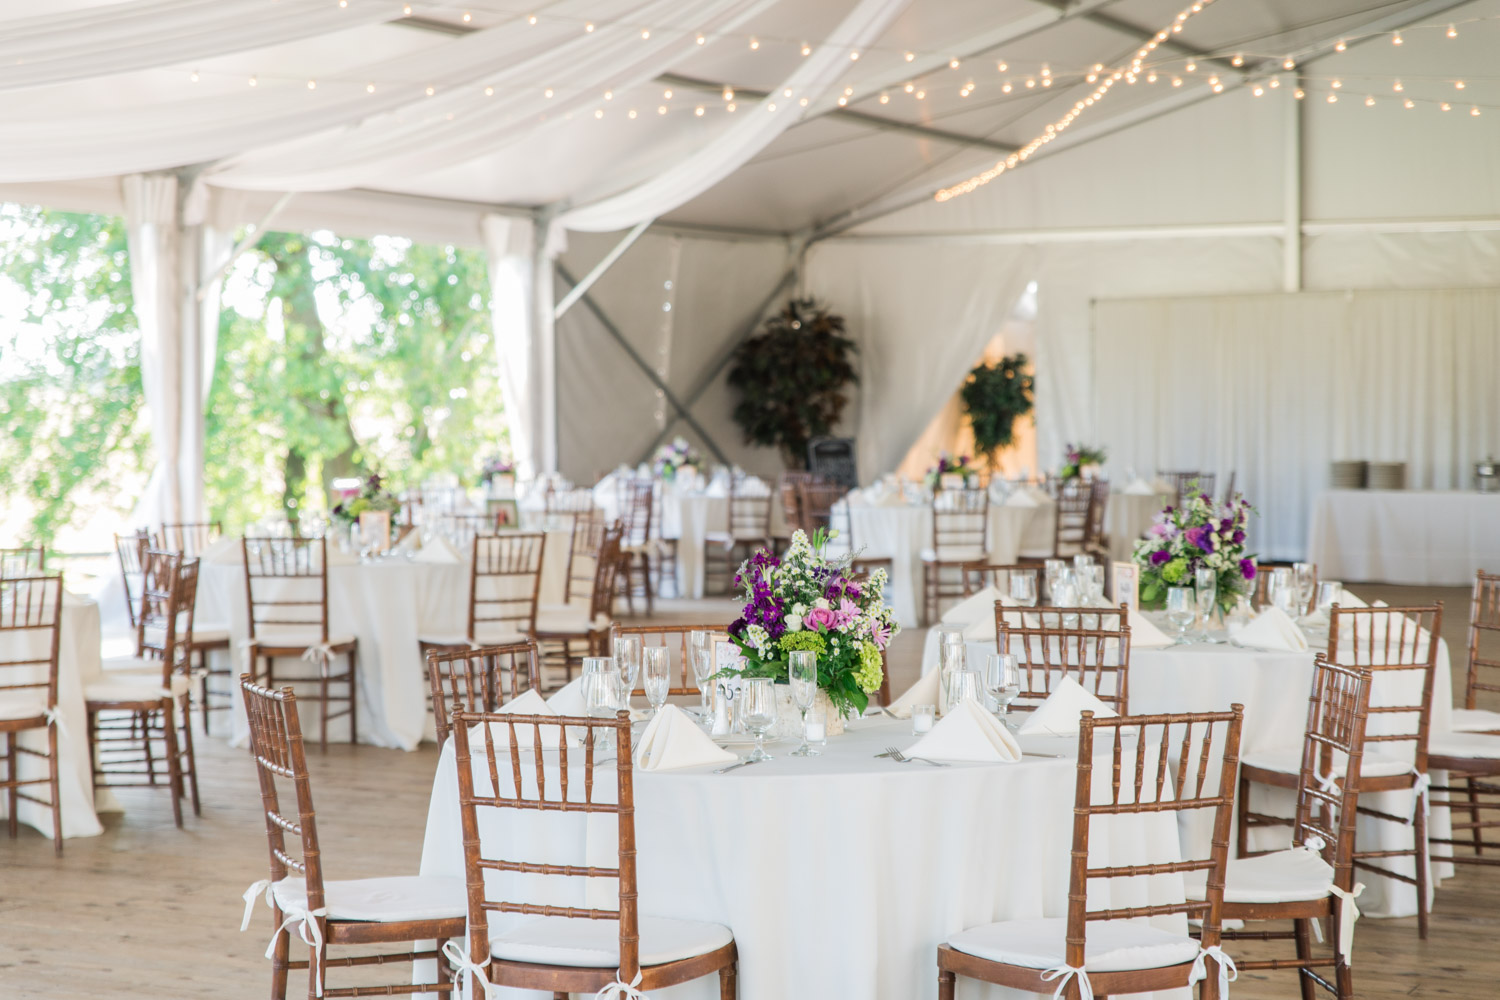 Wedding reception at Walker's Overlook with white linens and eggplant sage pink and green flowers, vintage romantic garden wedding ideas, Cavin Elizabeth Photography